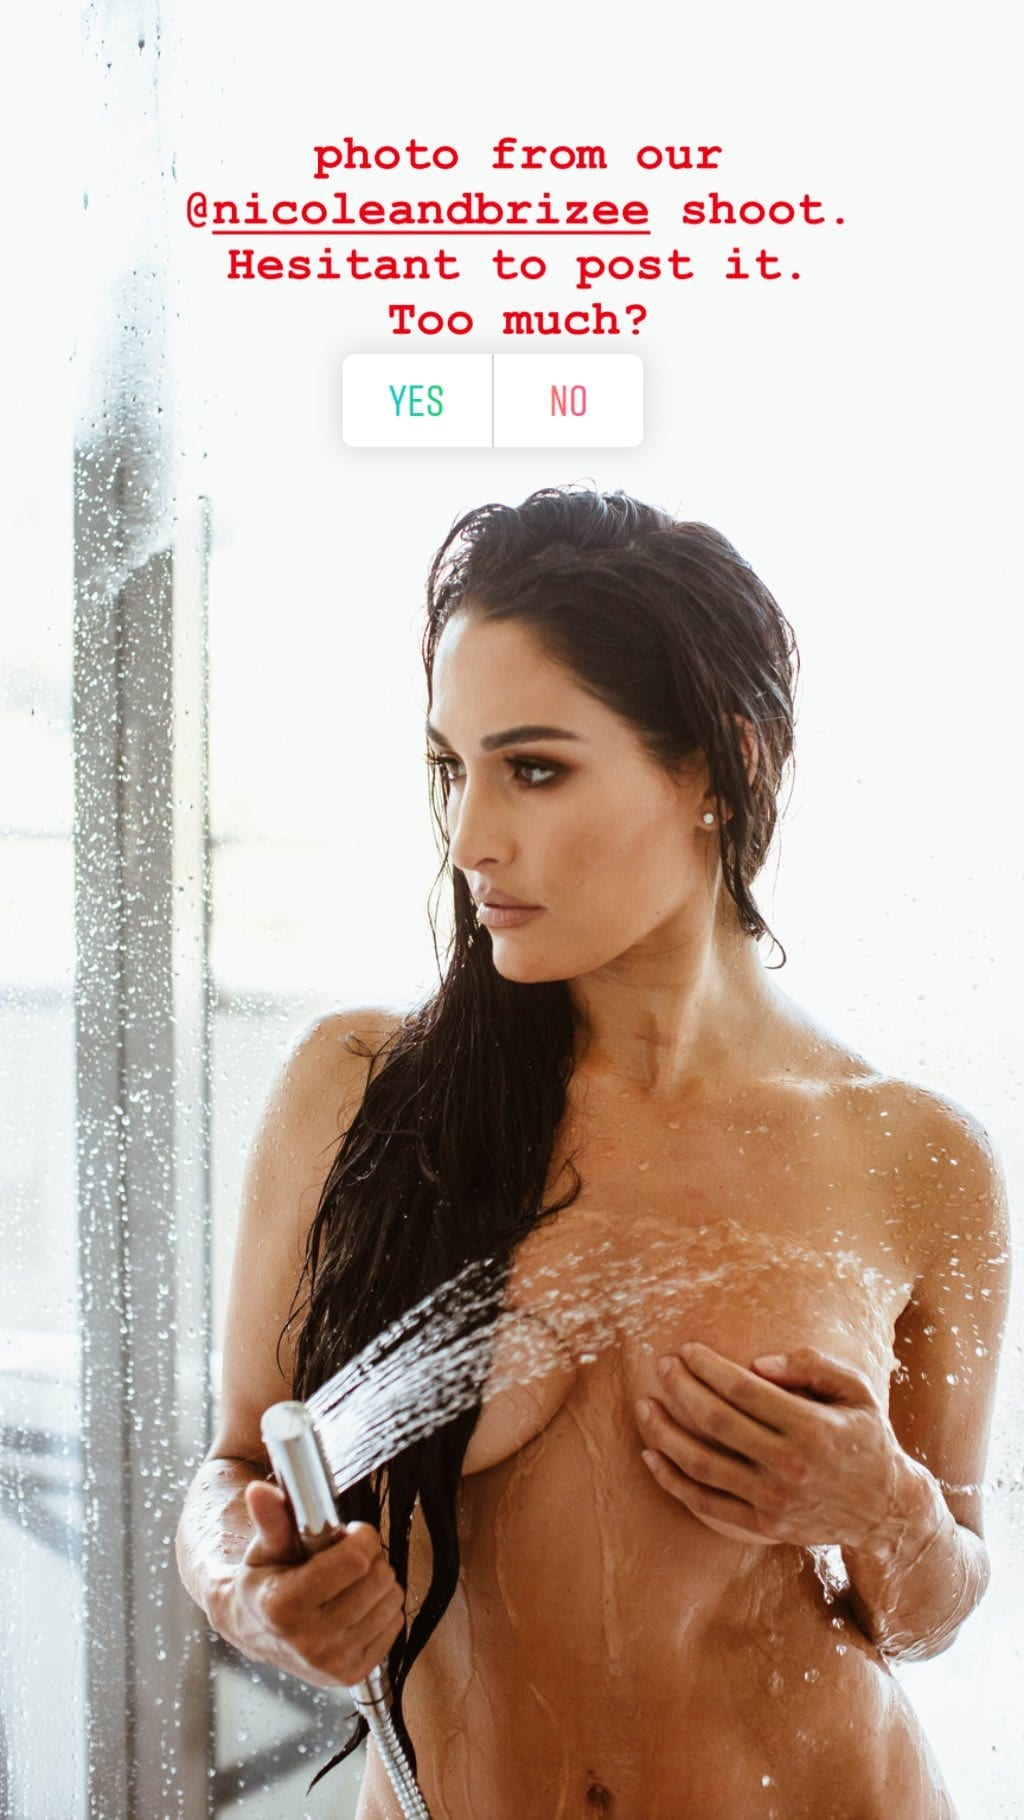 WWE News: Nikki Bella Posts Revealing Pictures On Social Media, Again 3